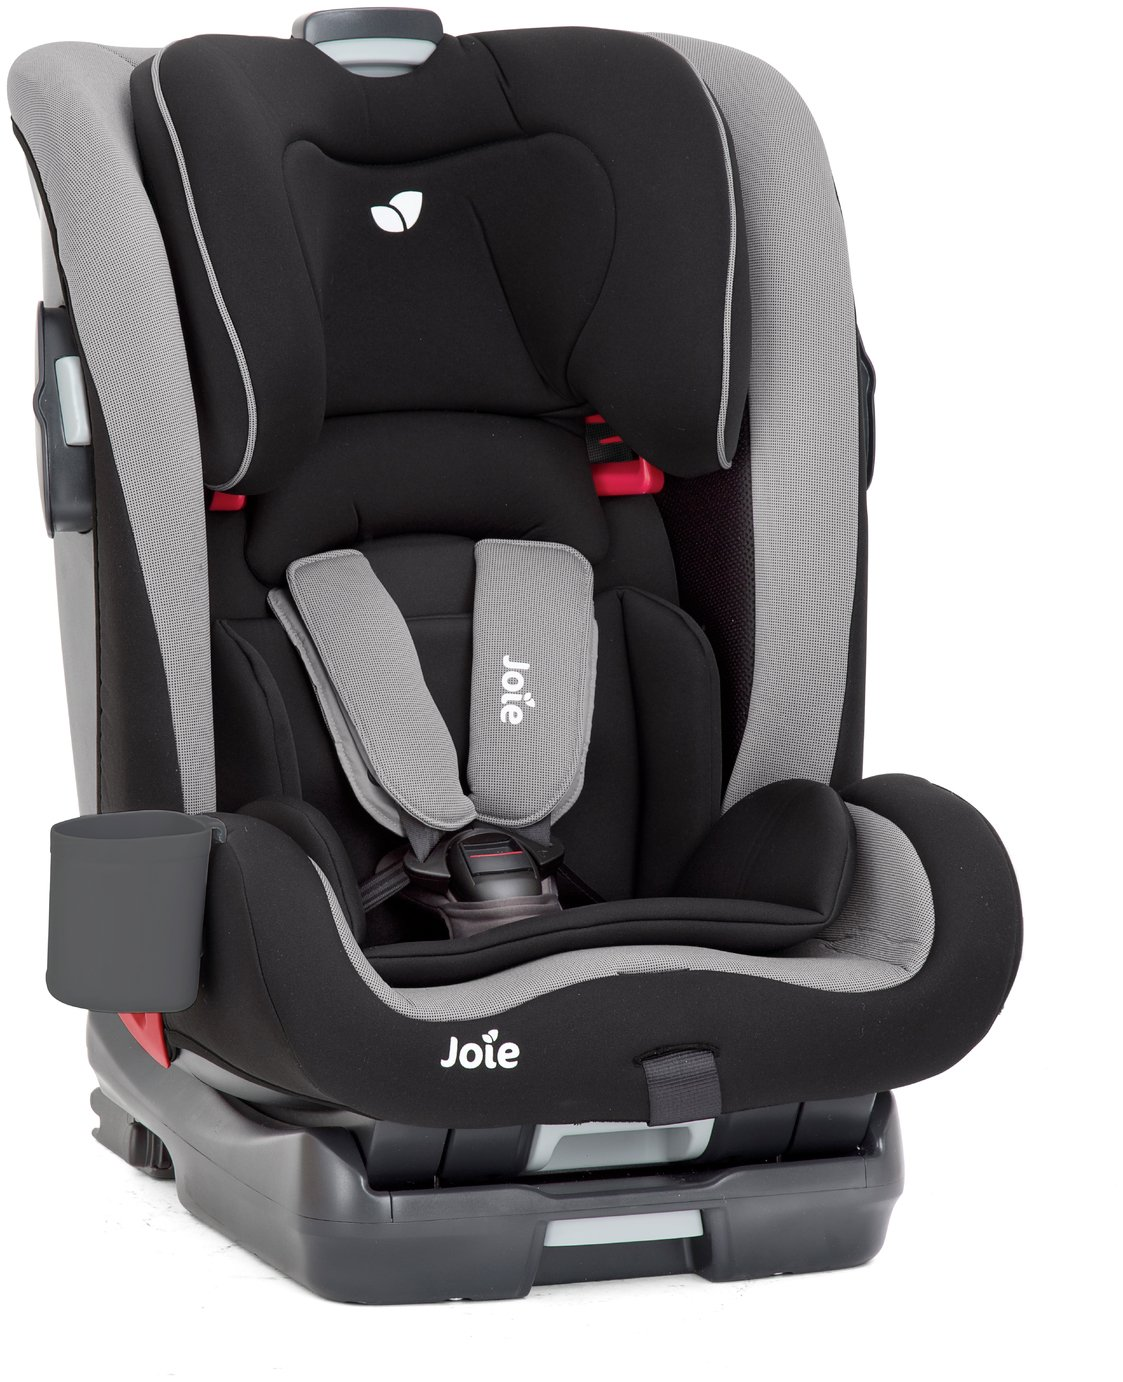 Joie Bold Car Seat Groups 1-2-3 - Slate from Joie